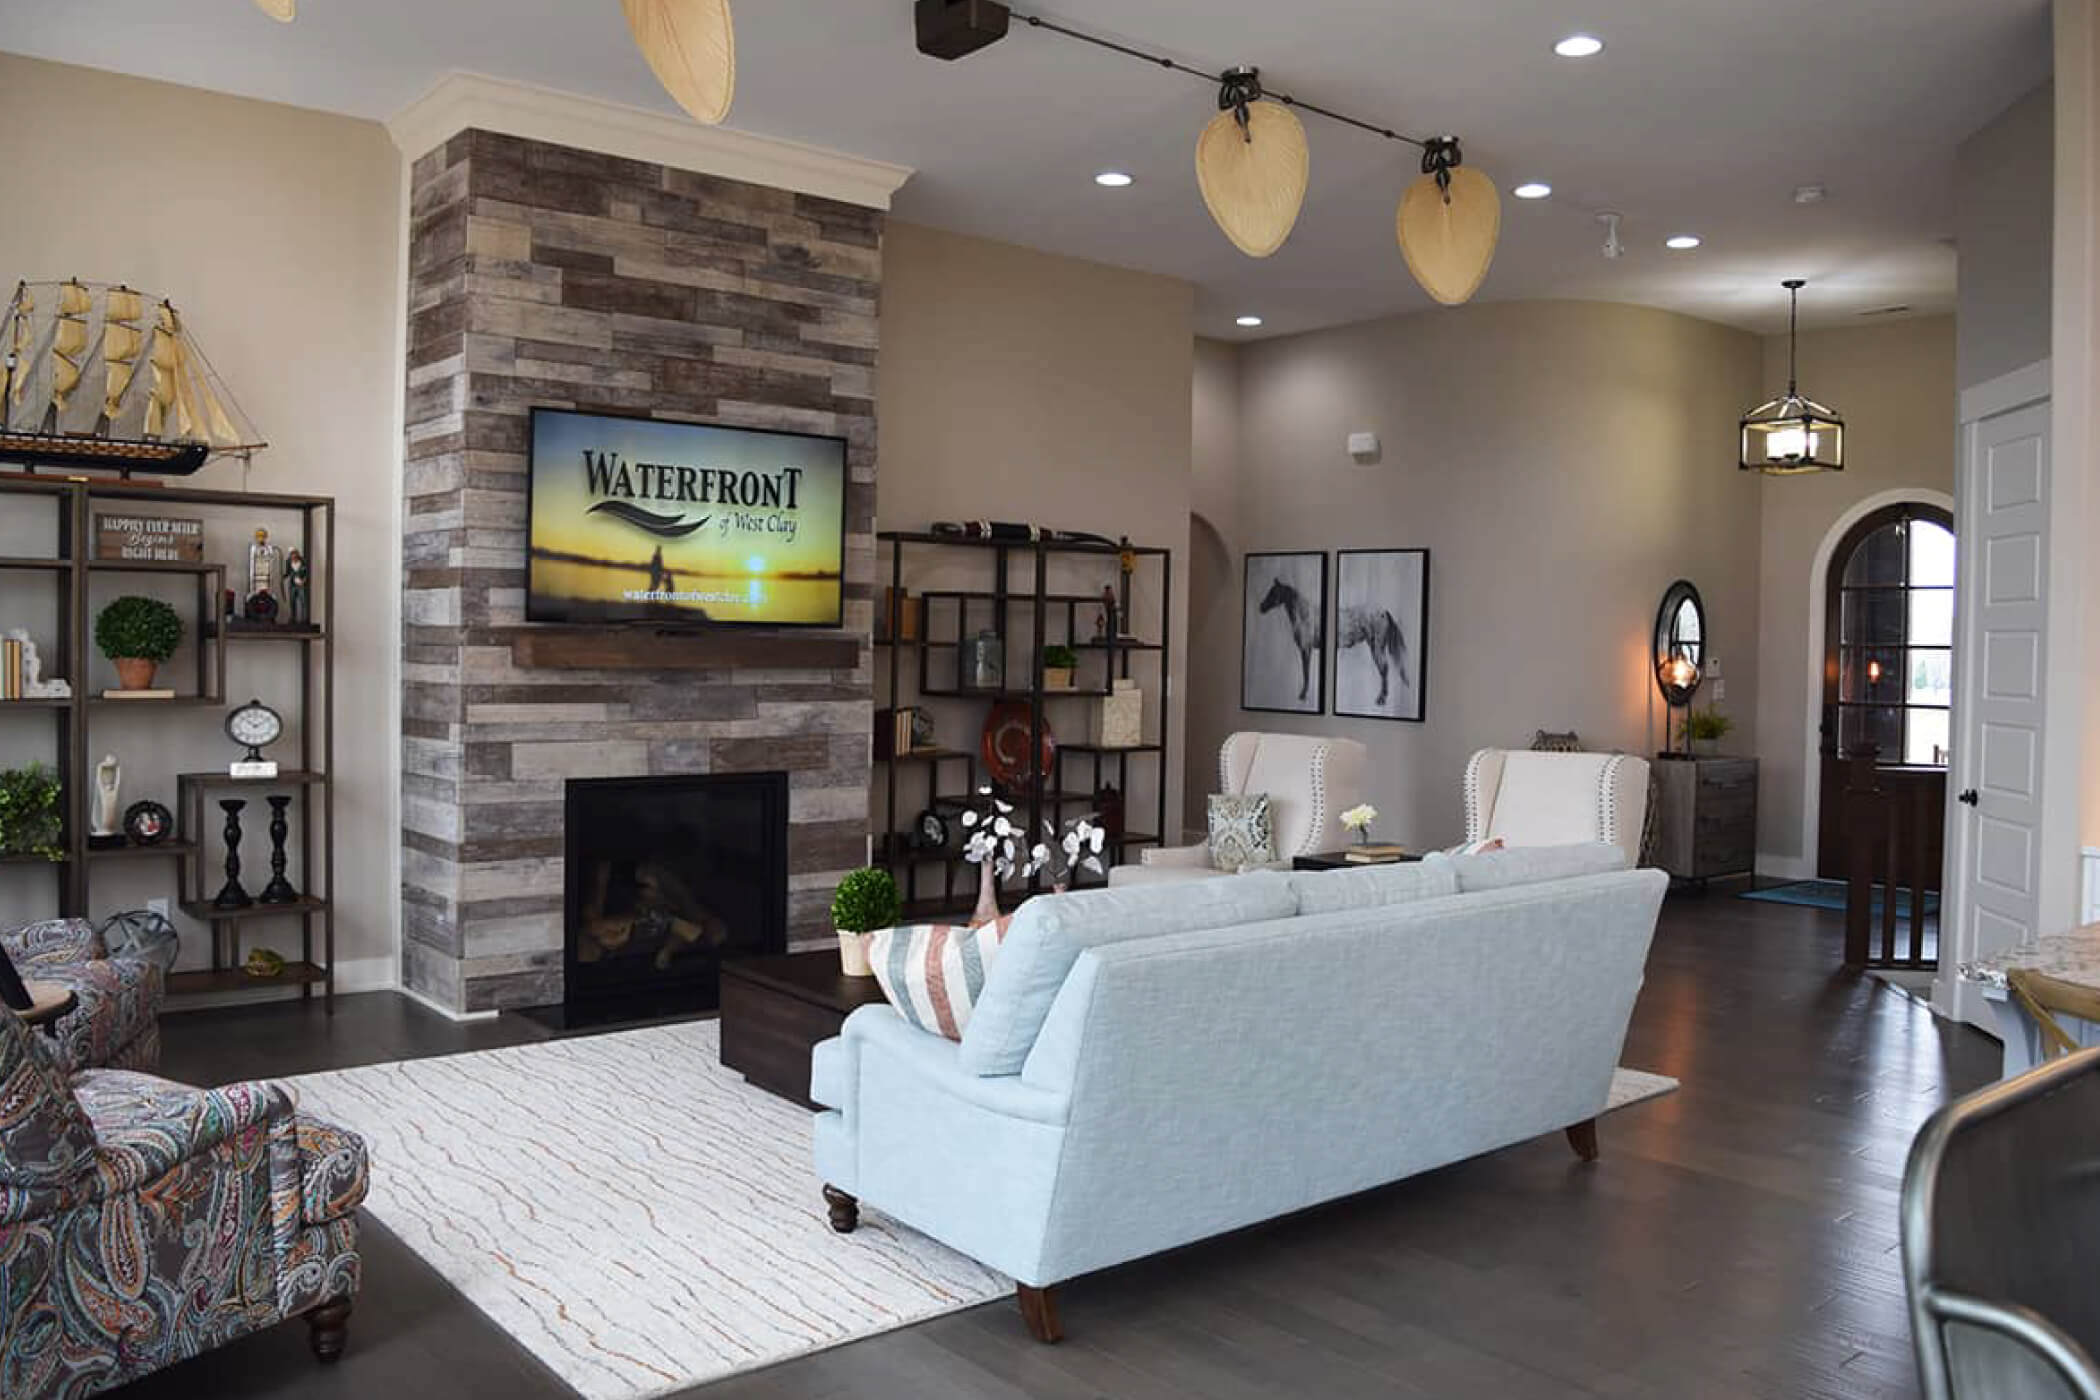 Blue couch with tan decorative chairs facing a television showing the Waterfront of West Clay custom homes slideshow